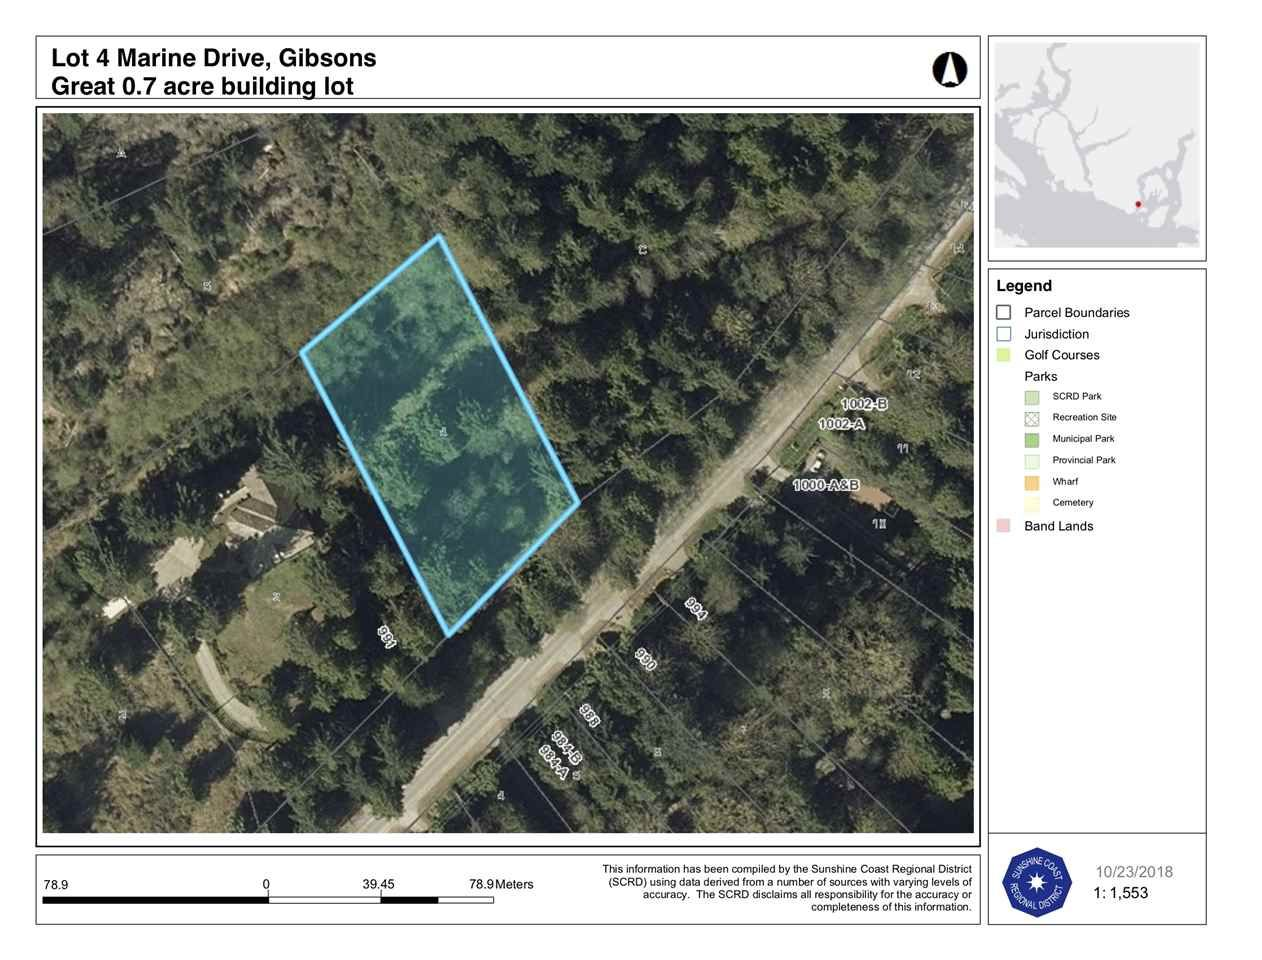 Lot 4 is .7 of an acre in a choice location perfect for commuters to Vancouver or those who are looking to build close to Lower Gibsons and the ocean.